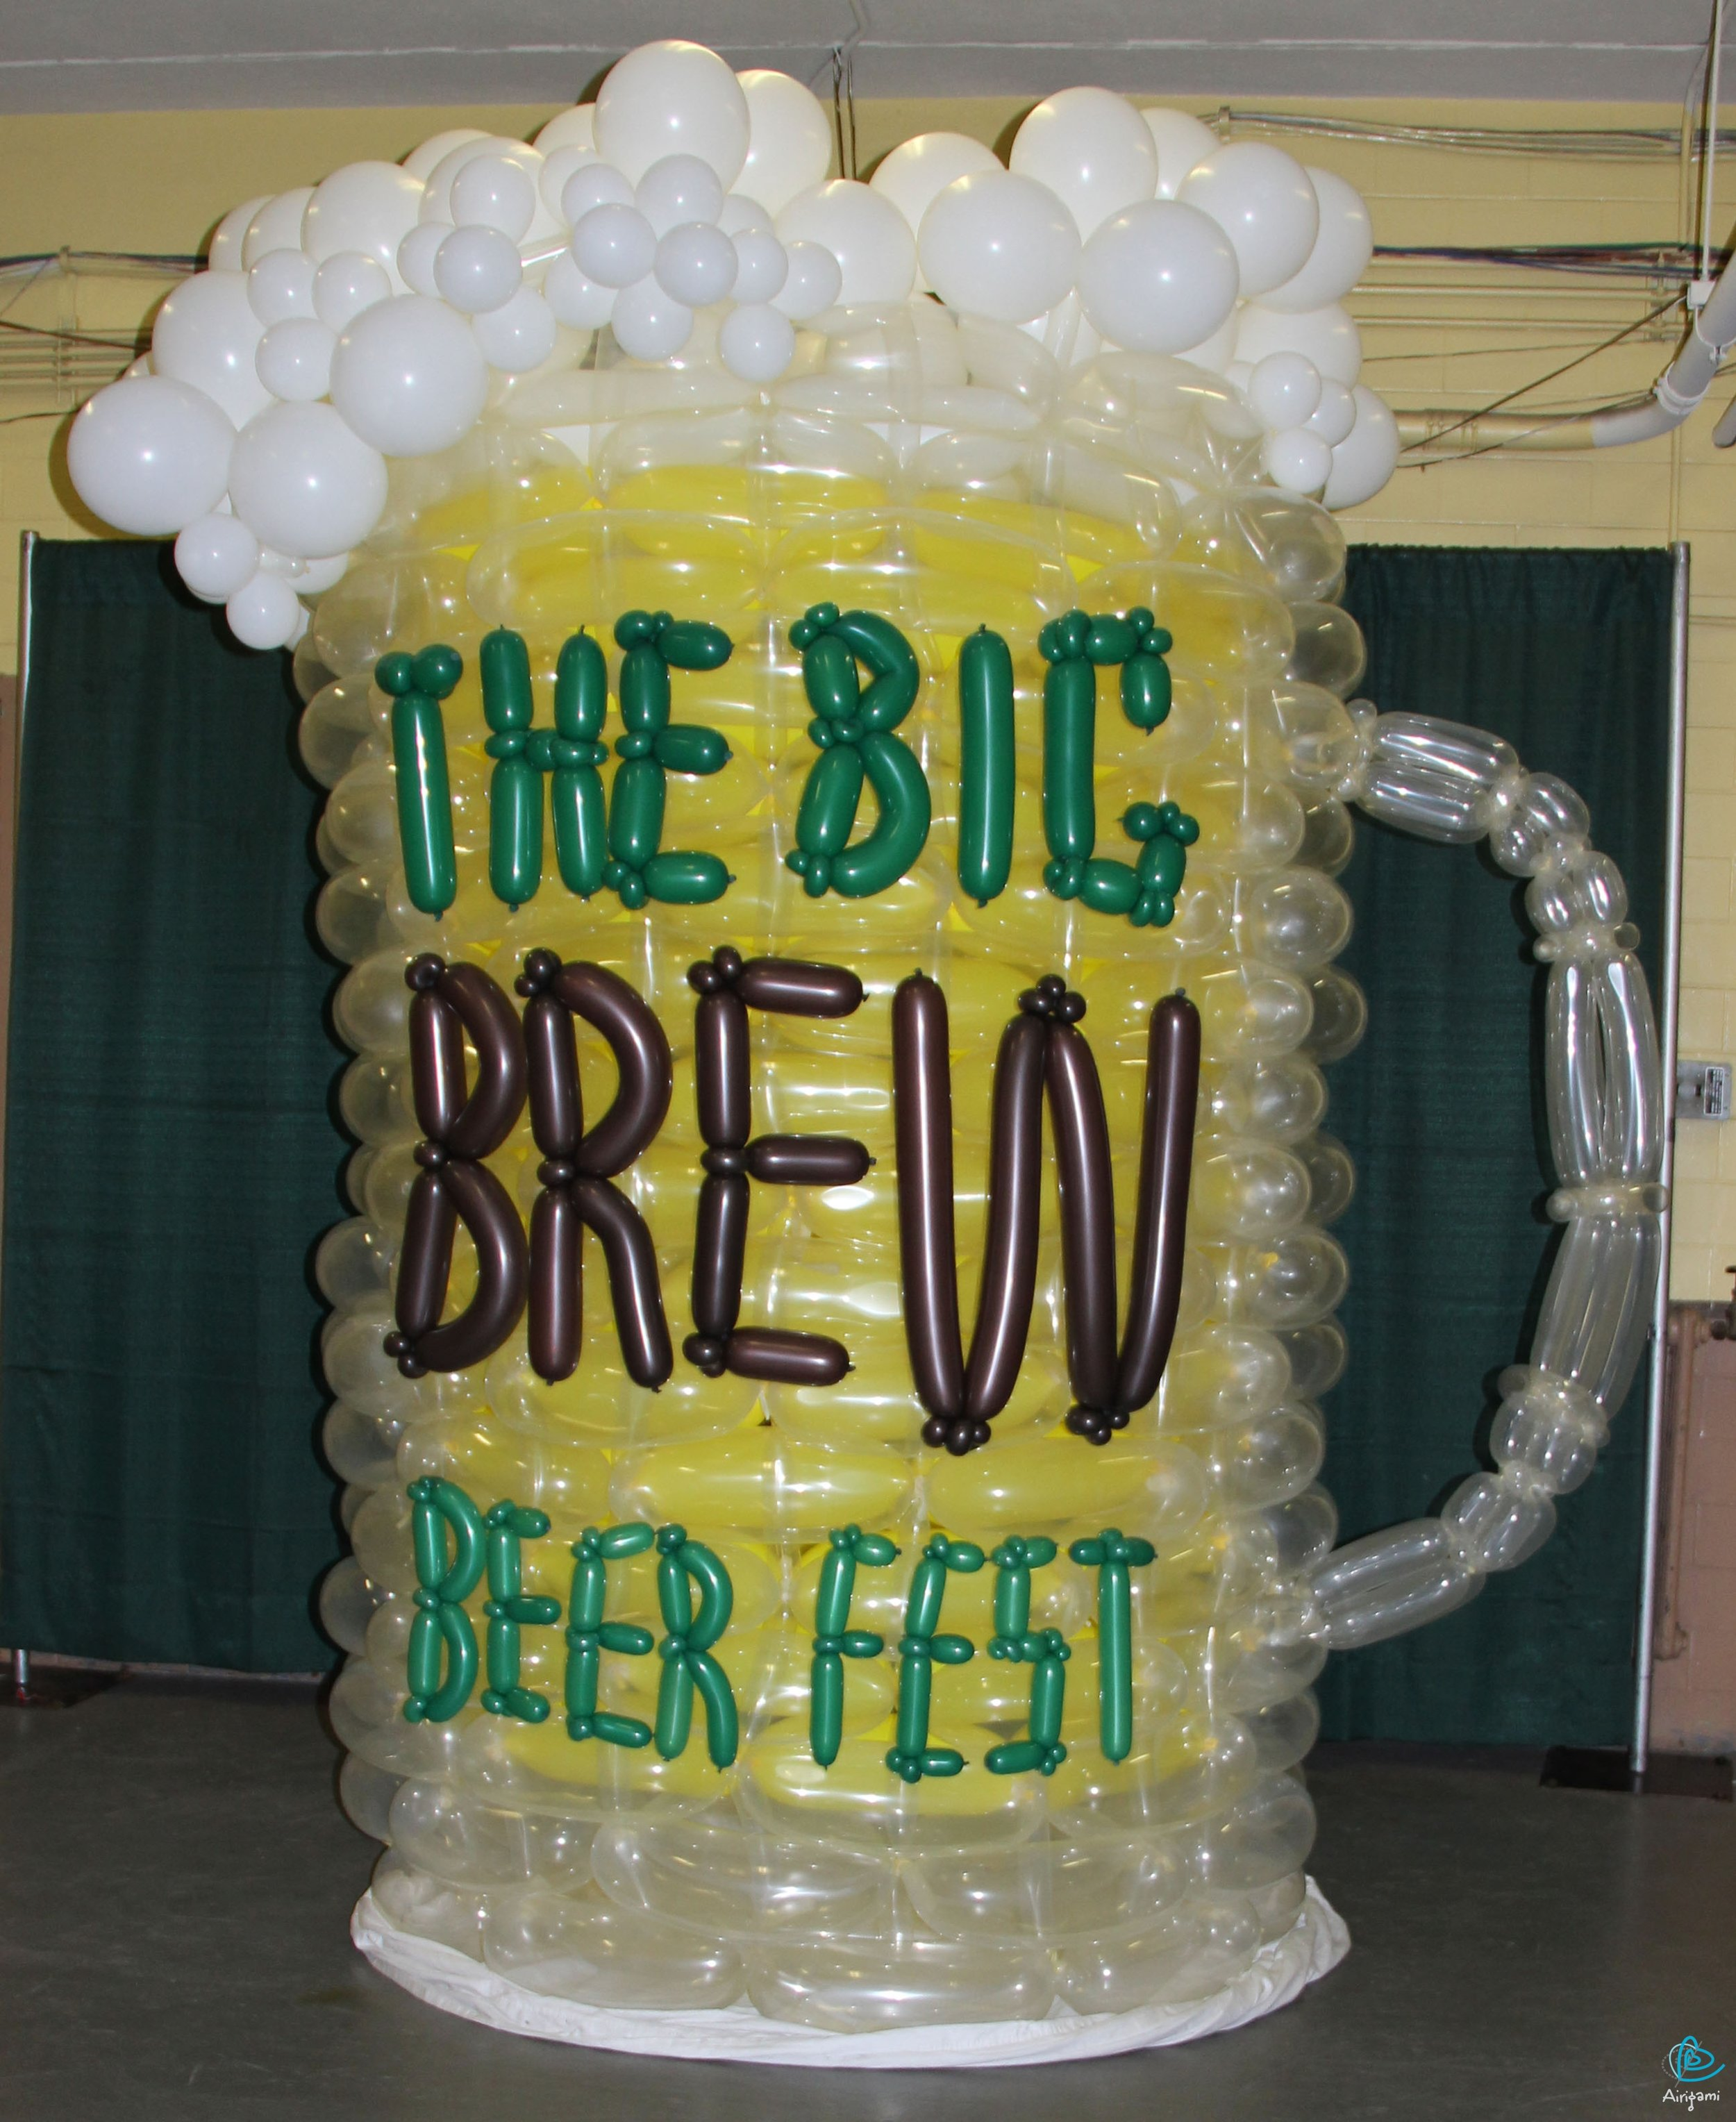 Big Brew Beer Fest